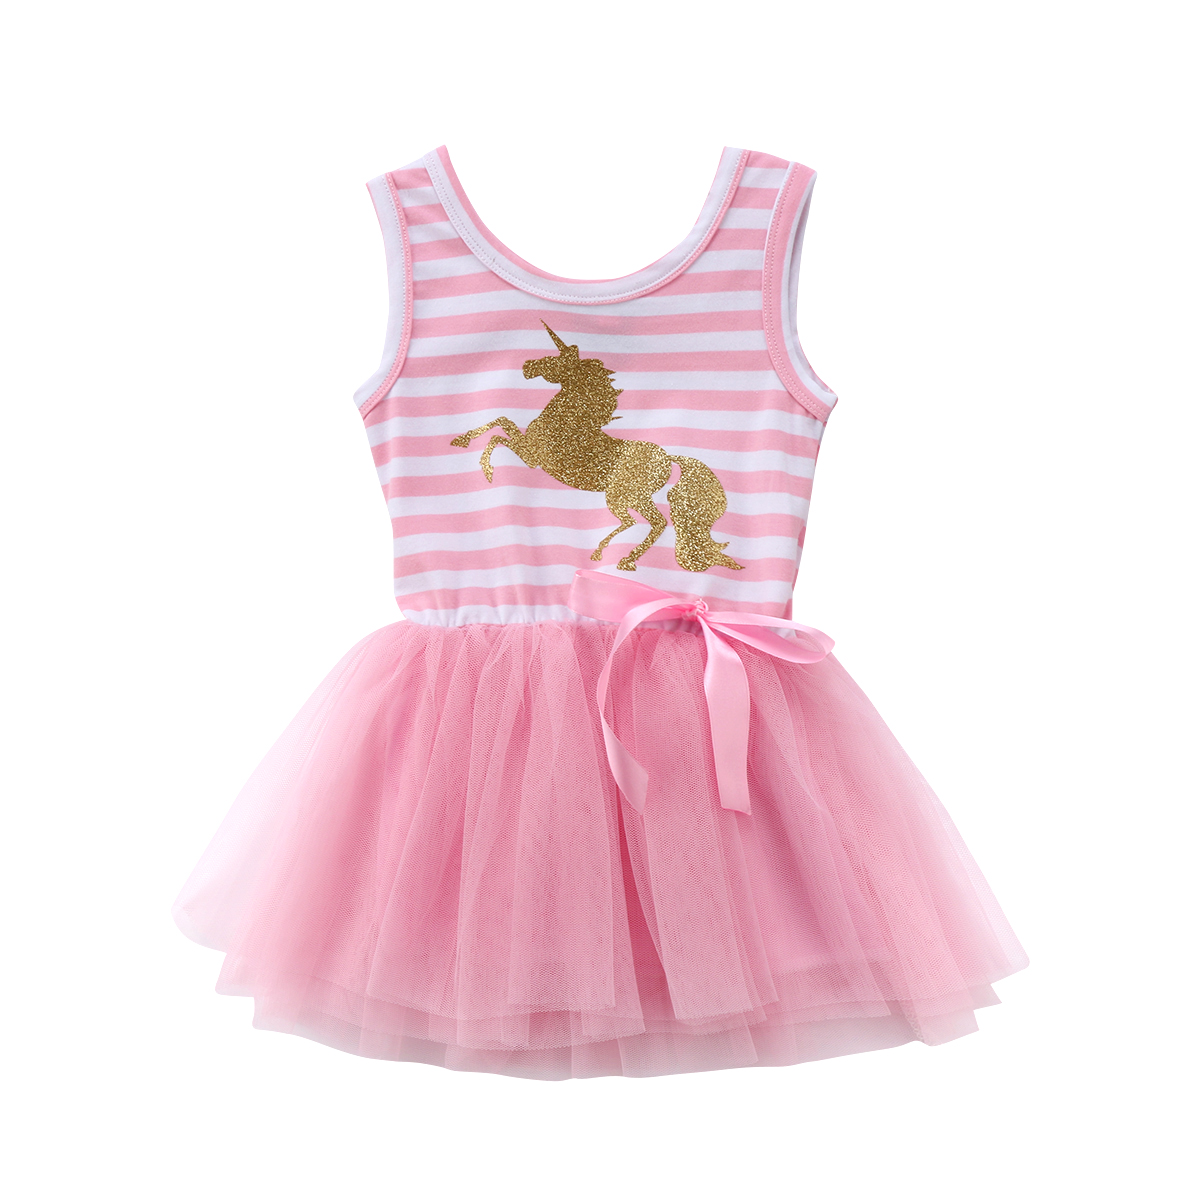 cdfe087badd75 best robe rose tutu bebe fille list and get free shipping - 488blm7a